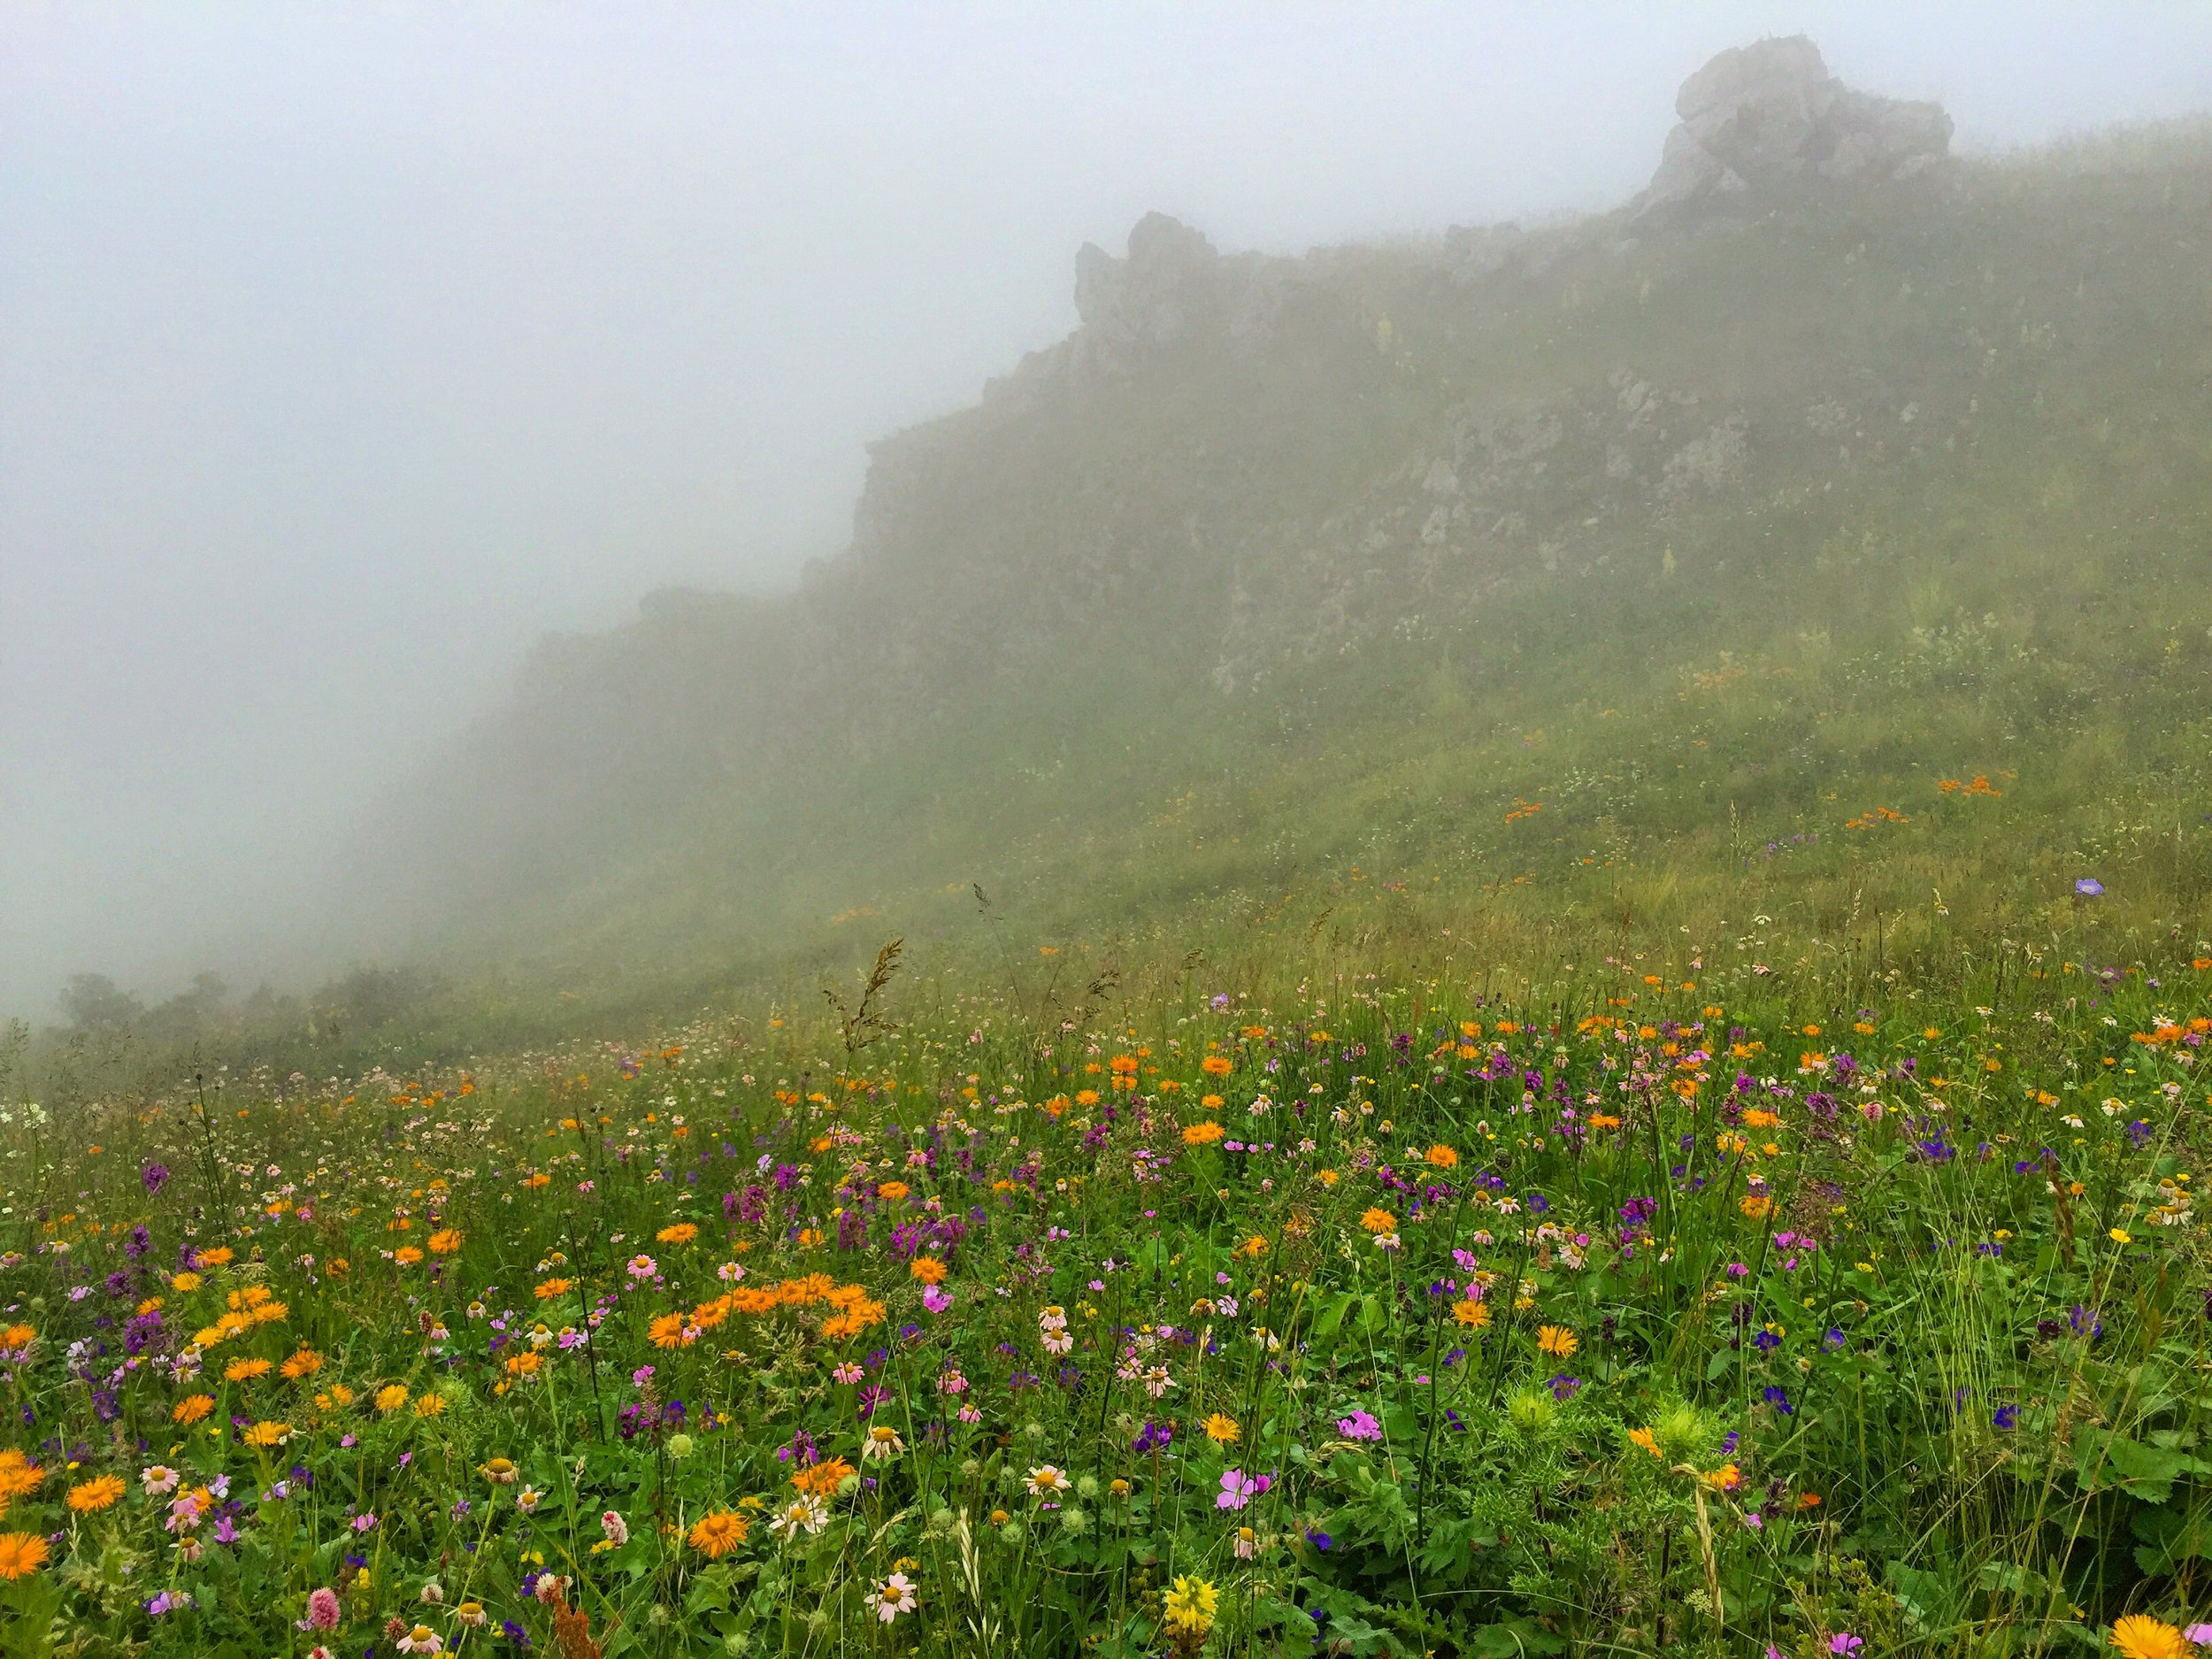 Wildflowers on the mountain